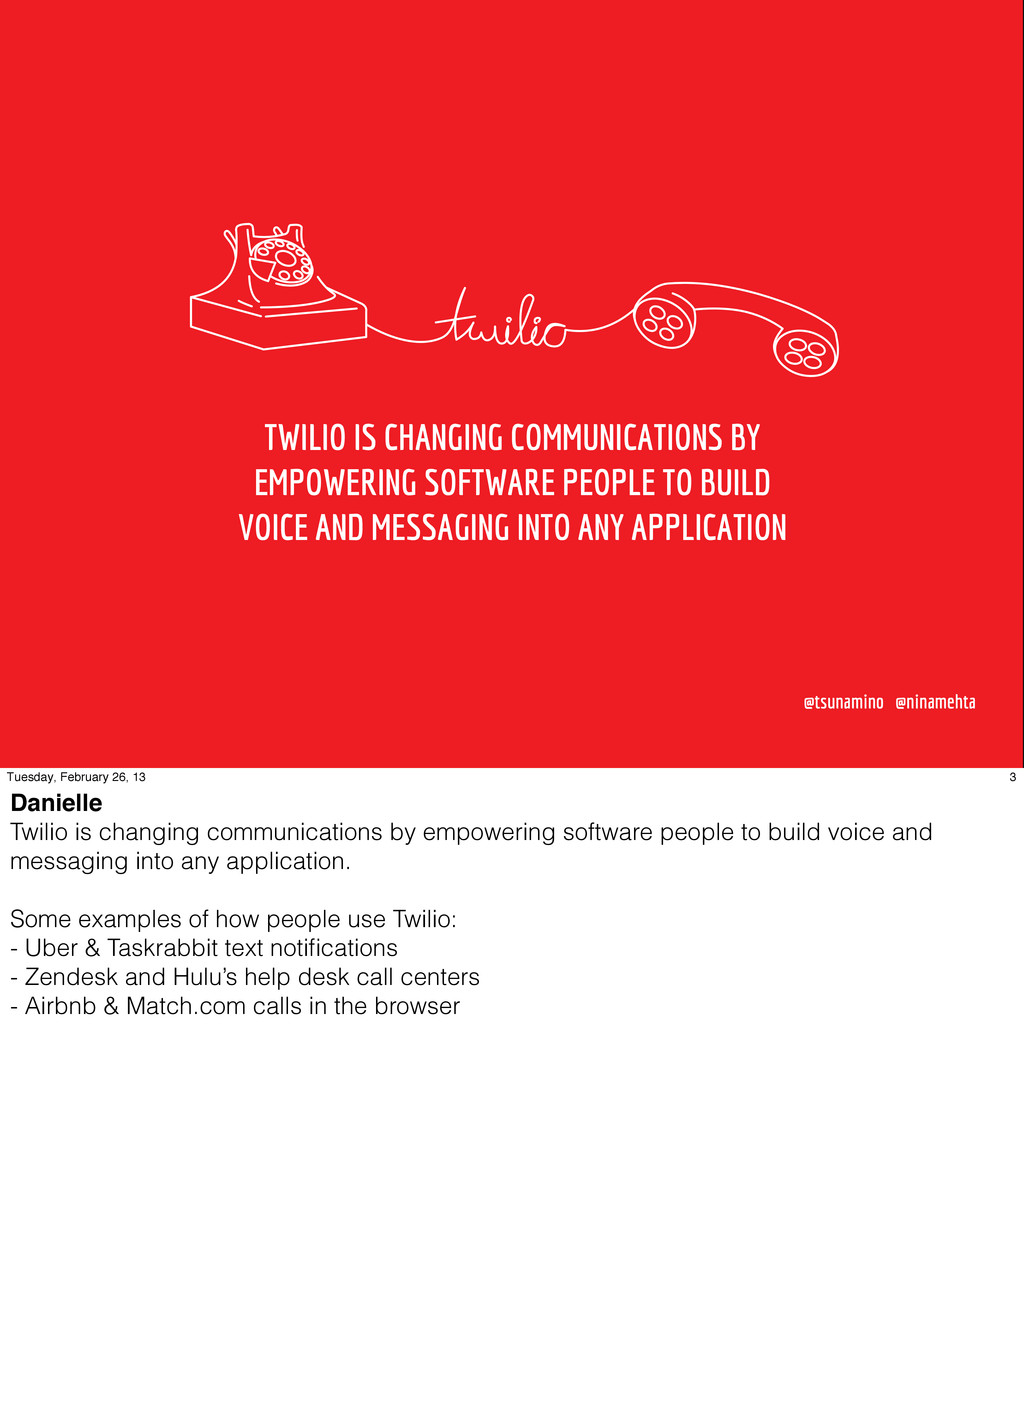 TWILIO IS CHANGING COMMUNICATIONS BY EMPOWERING...